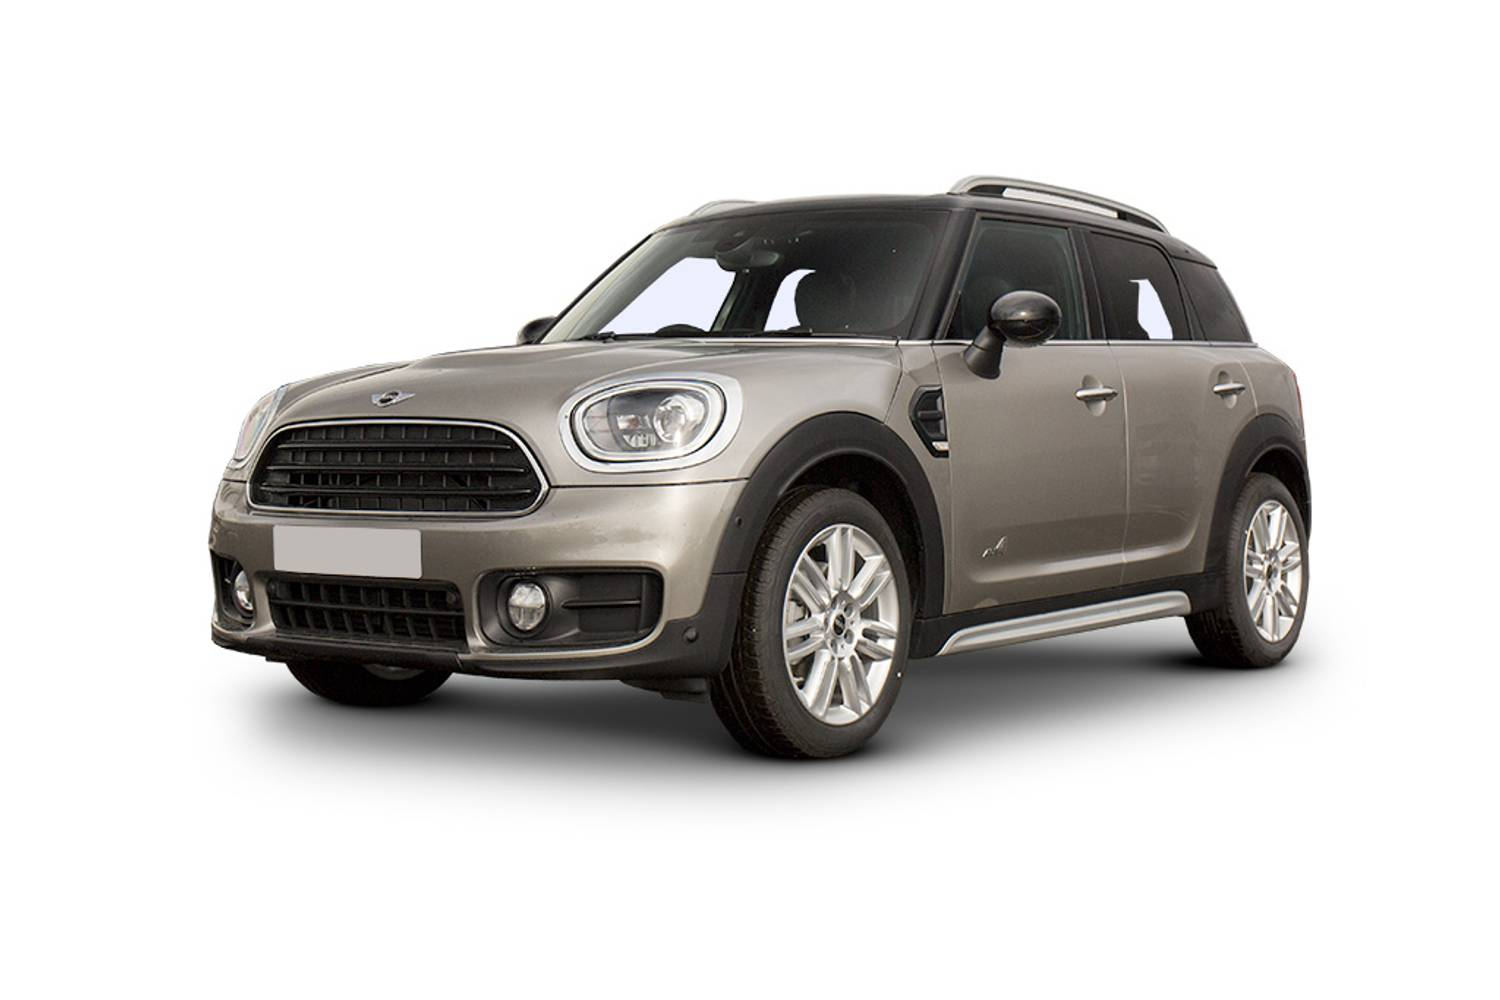 new mini countryman diesel hatchback 2 0 cooper s d all4 5 door auto jcw chili pack 2017. Black Bedroom Furniture Sets. Home Design Ideas